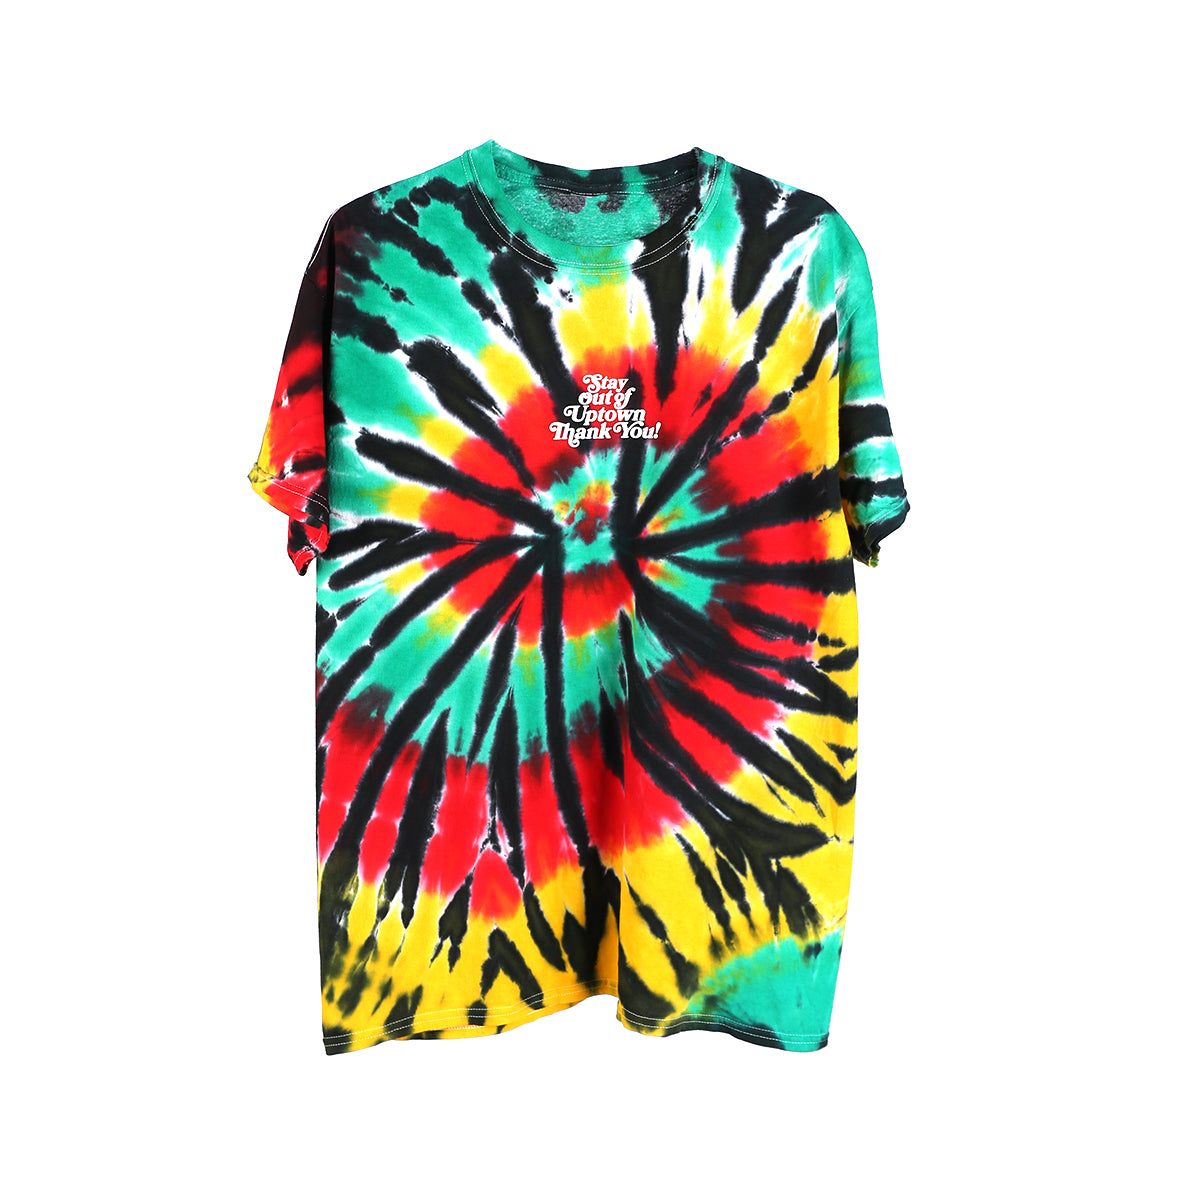 Stay Out of Uptown Tie Dye - Rasta